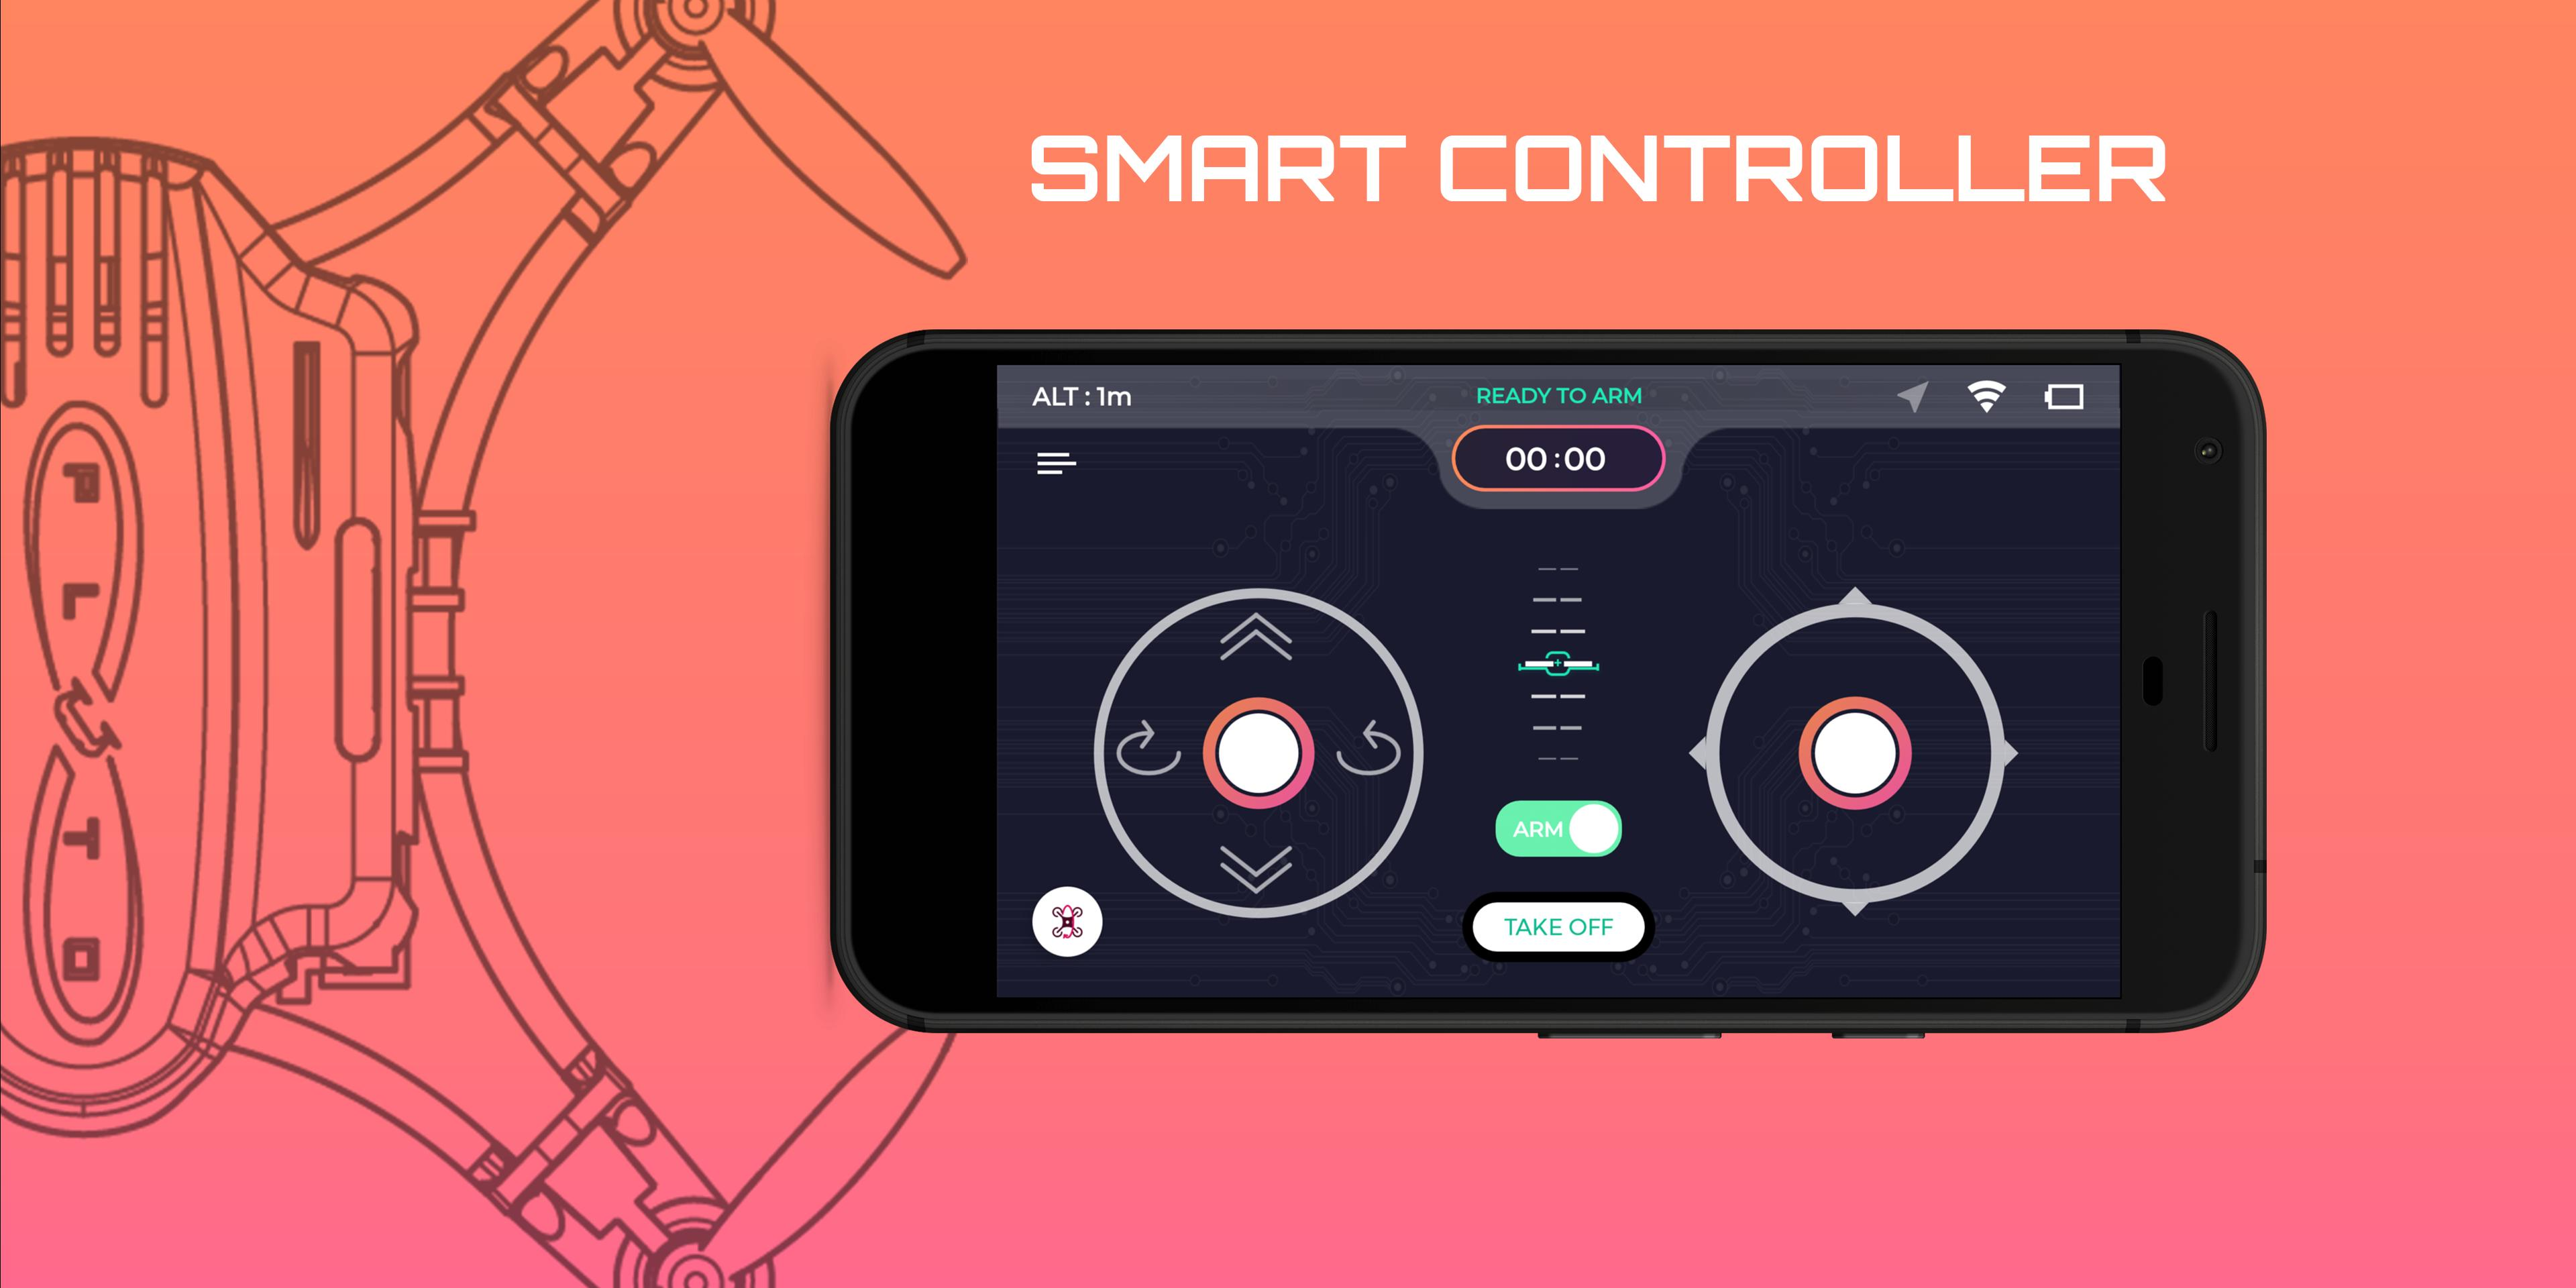 Pluto Controller for Android - APK Download